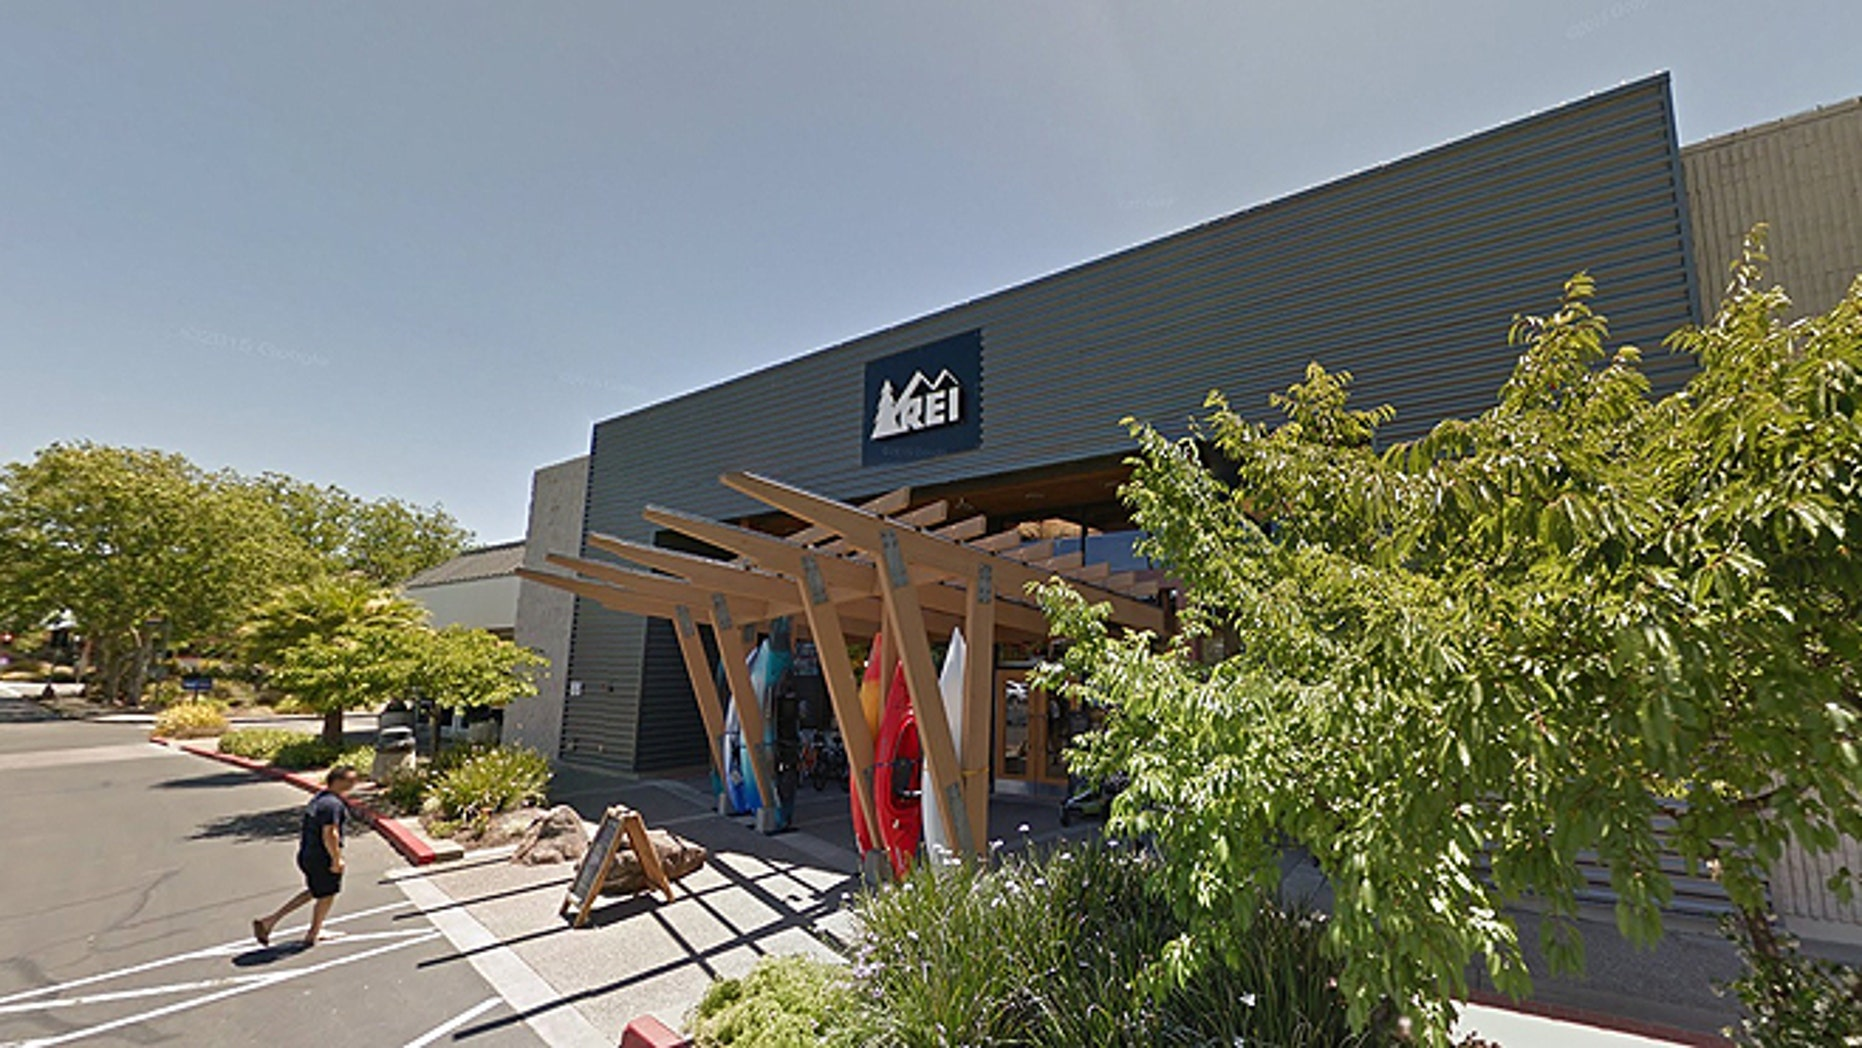 A Northern California mother was banned from this REI sporting goods store in Santa Rosa after she voiced concerns that a man went into the ladies room while her 12-year-old daughter was in there. (Google Street View)